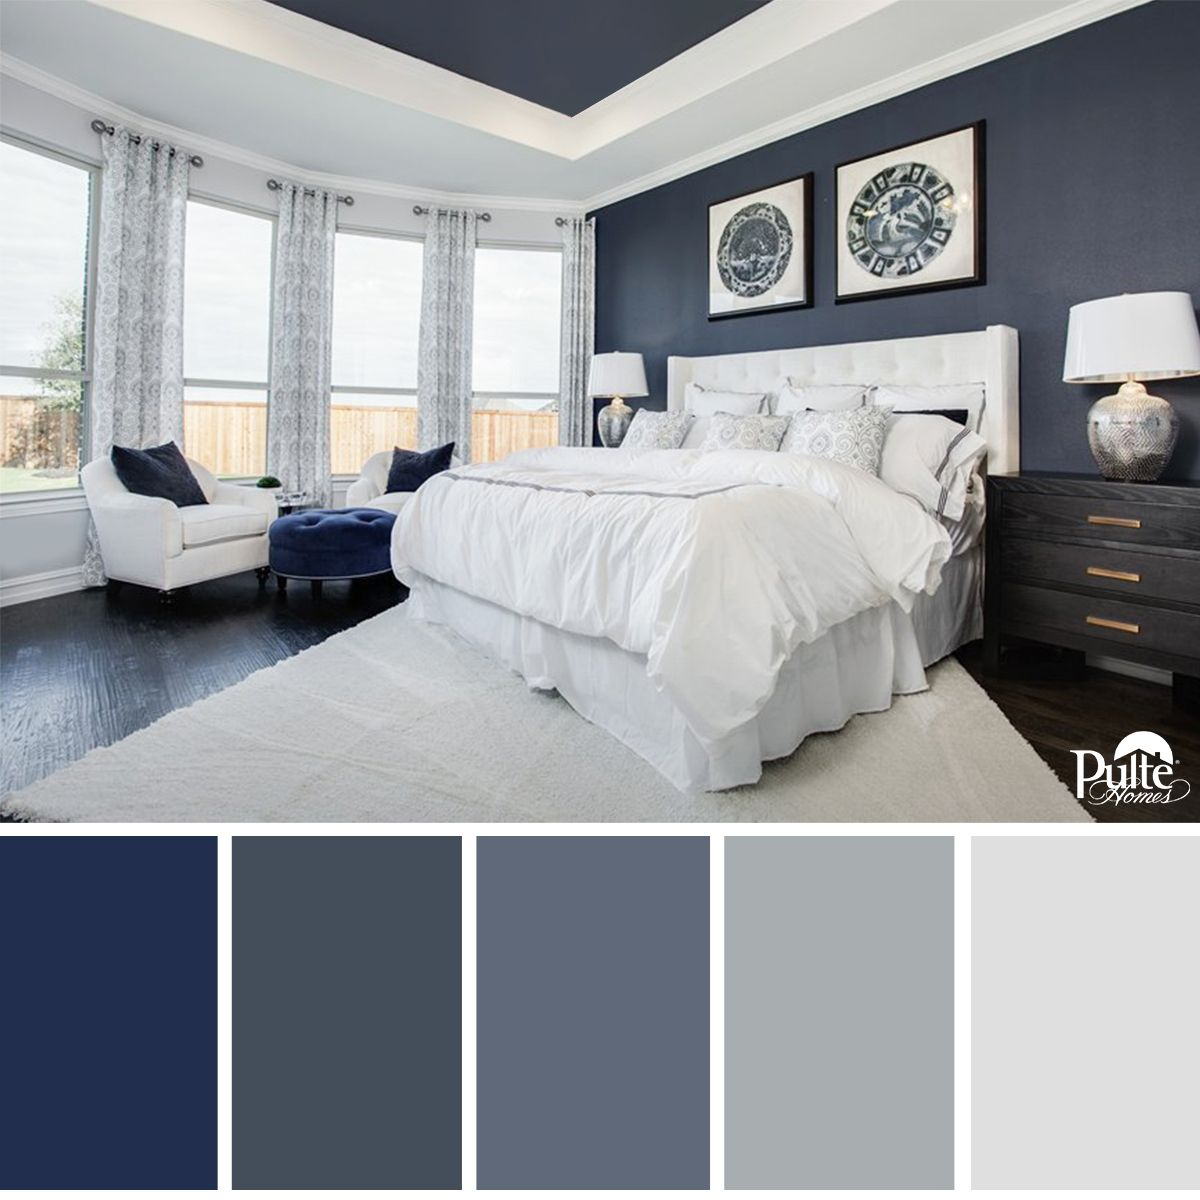 This Bedroom Design Has The Right Idea. The Rich Blue Color Palette And  Decor Create A Dreamy Space That Begs You To Kick Back And Relax. | Pulte  Homes Nice Design